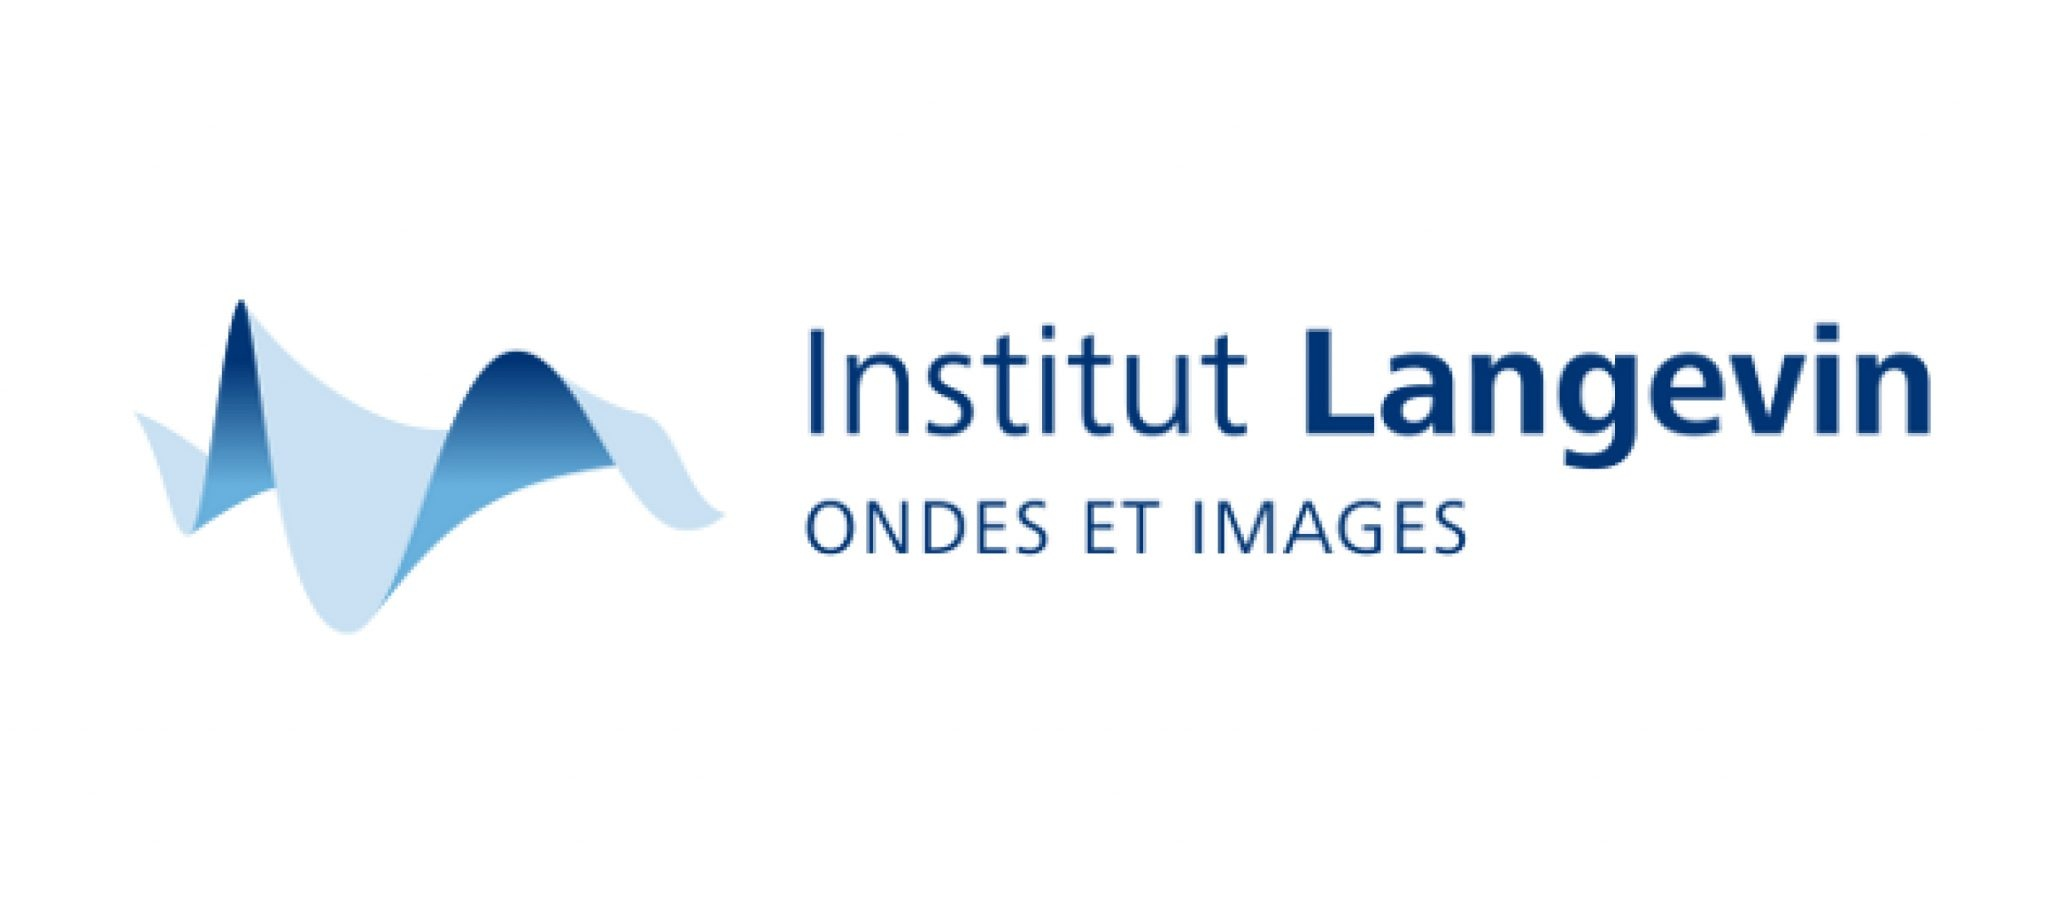 Post Doctoral Research Position (24 months) at the Langevin Institute (Paris)